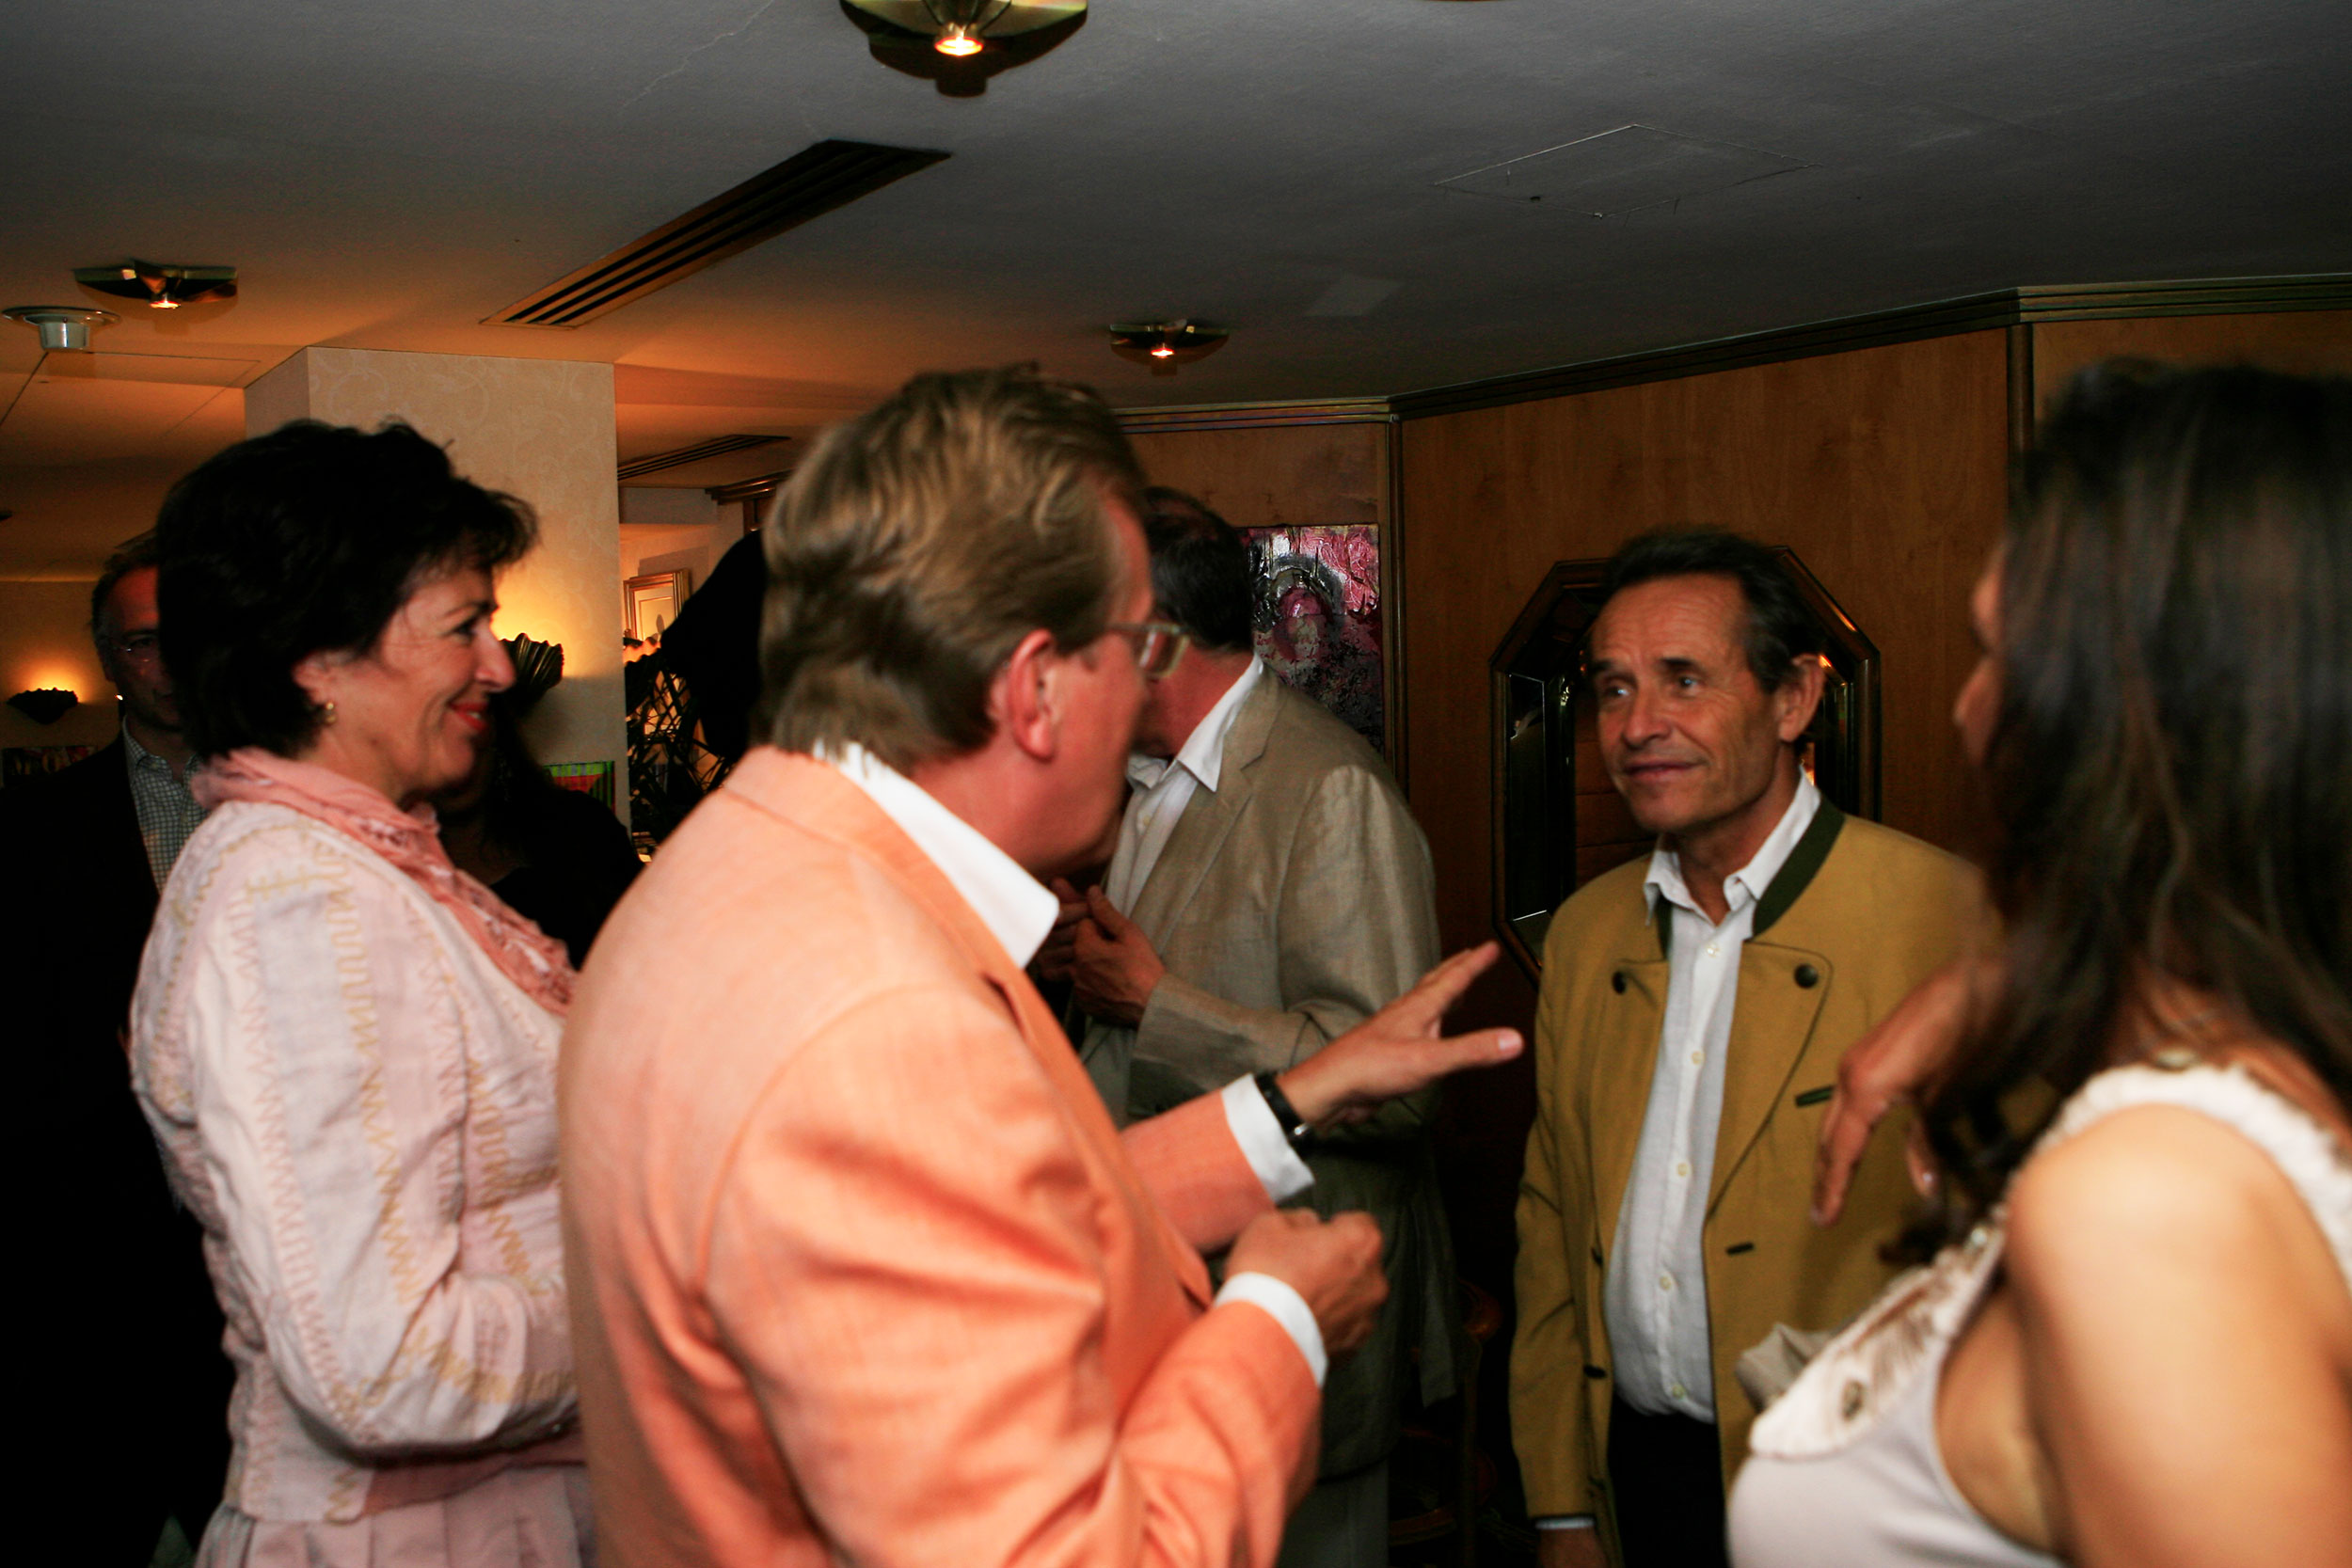 Cruise to Se7en guest could meet Jacky Ickx very personal